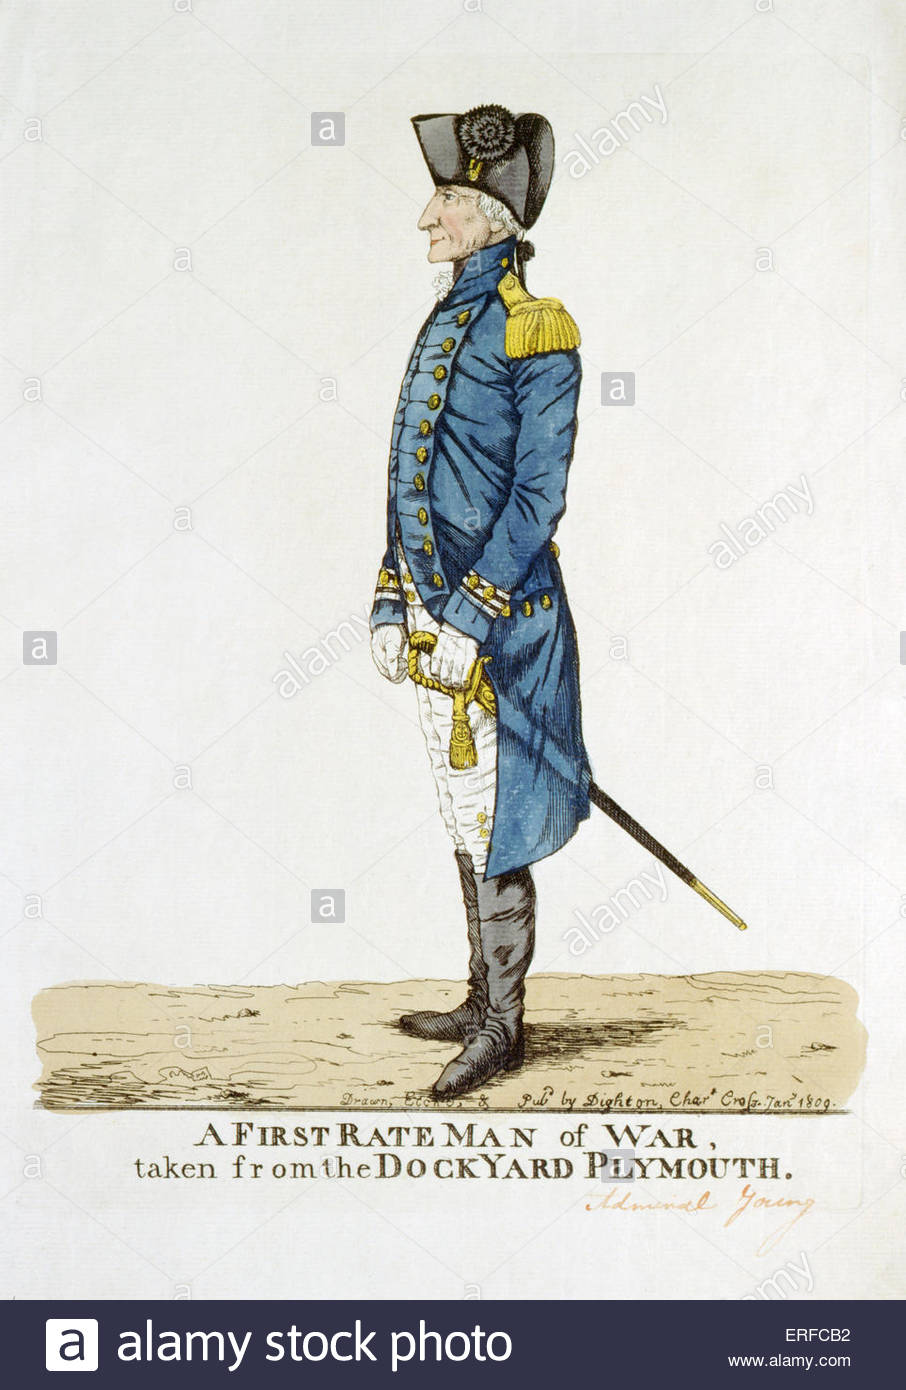 Sir George Young, 'A First Rate Man of War, taken from the Dockyward, Plymouth' drawn, etched and published - Stock Image